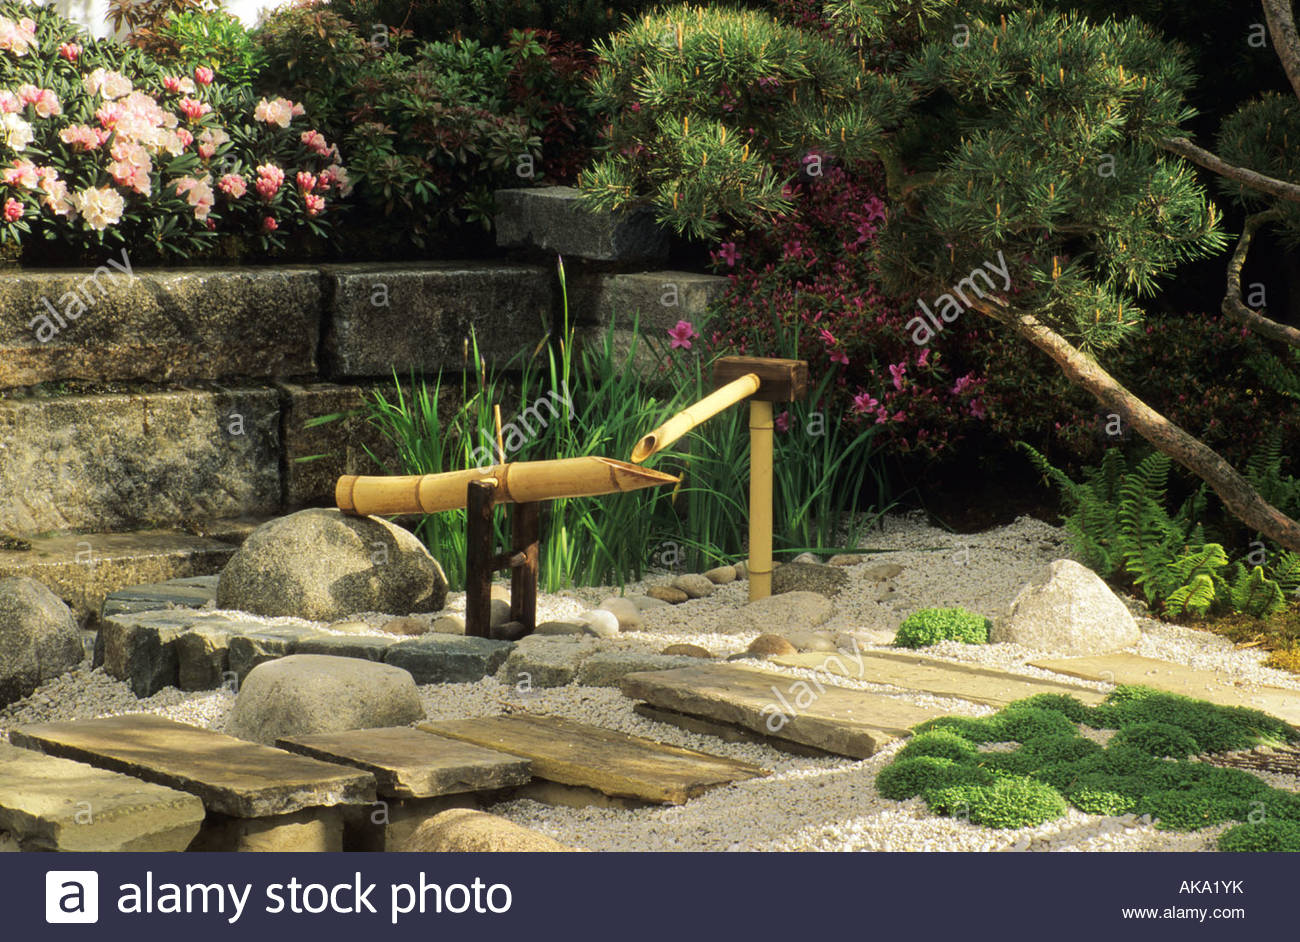 Chelsea flower show 1996 design hiroshi namori japanese for Japanese bamboo water feature